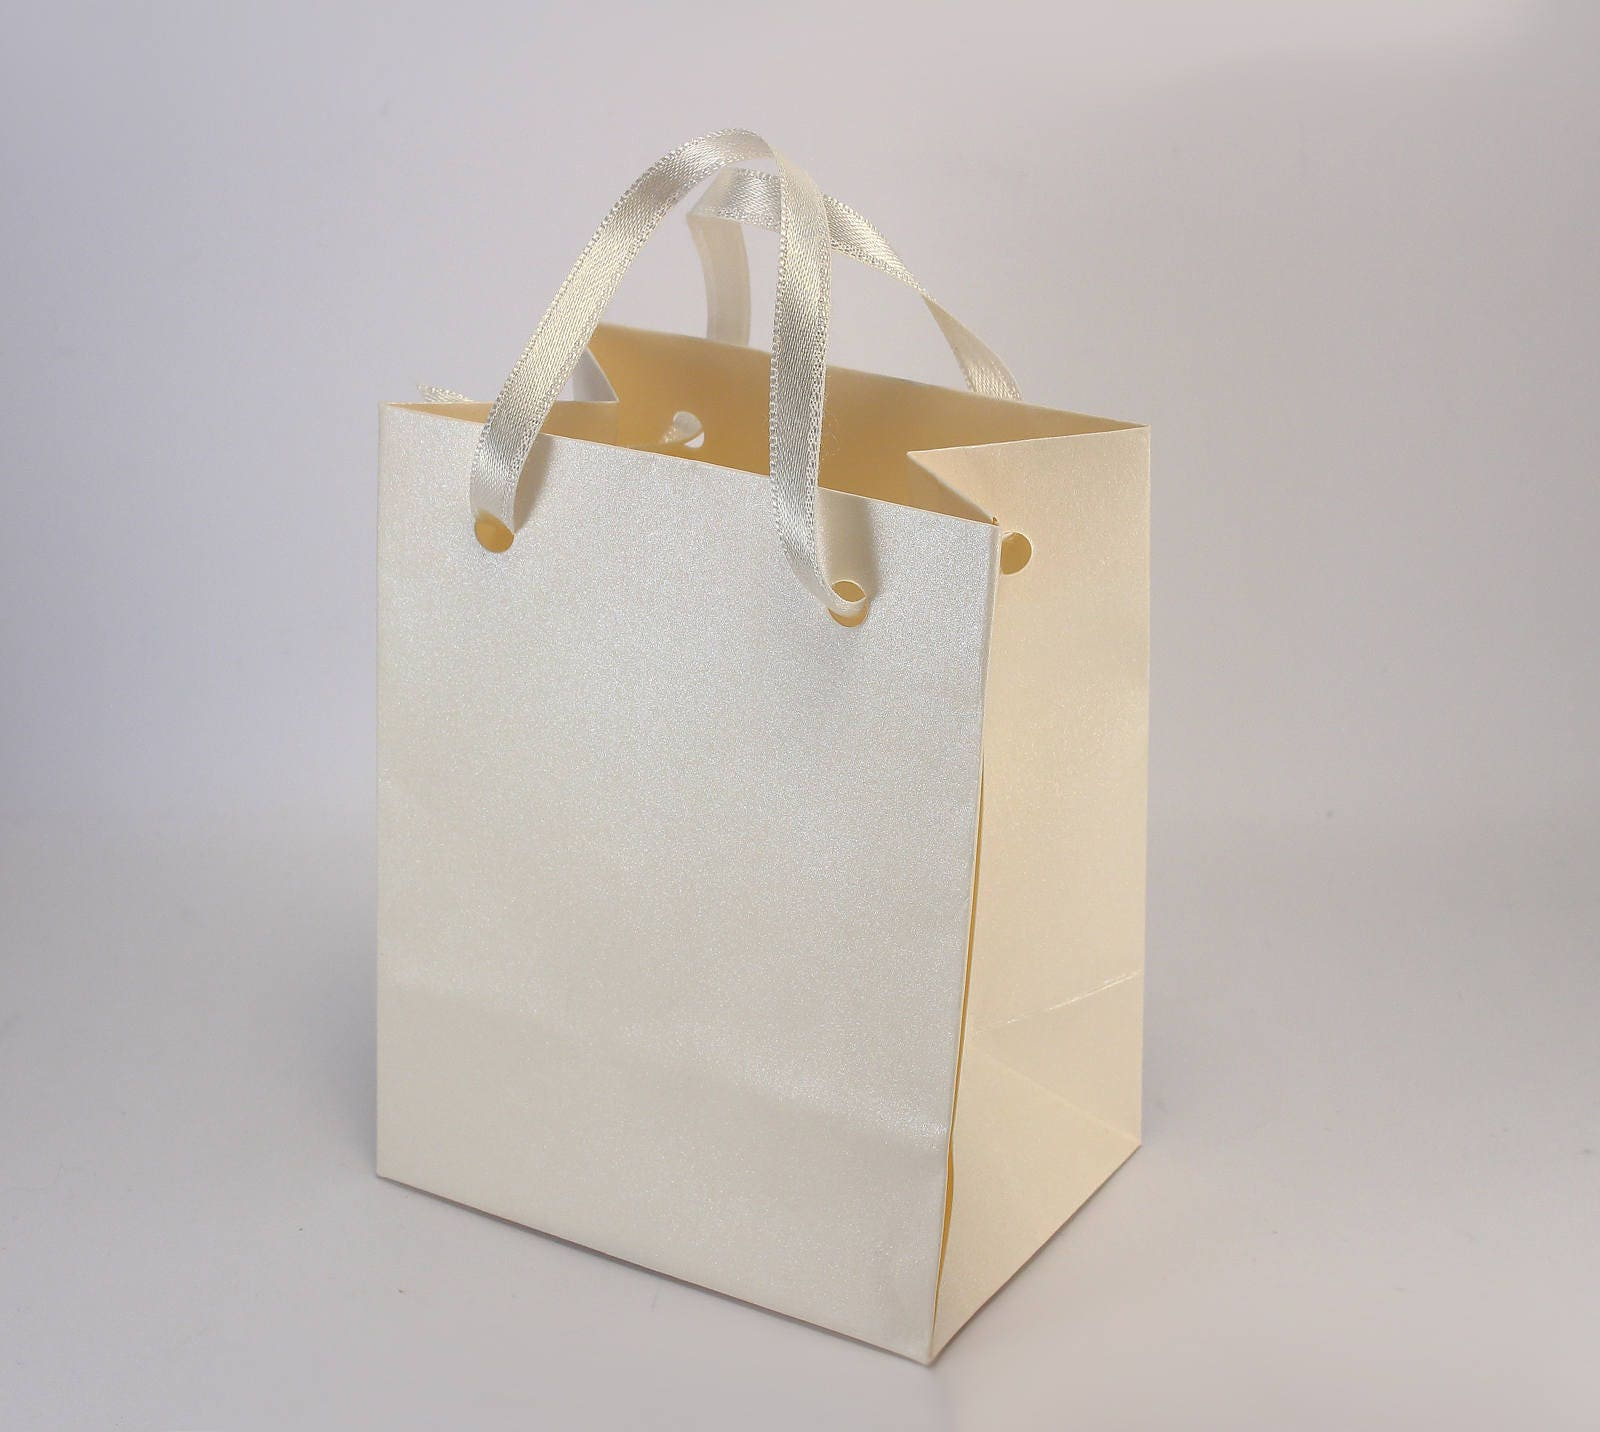 25 Paper Gift Bags - Ivory Paper Bags with handles - Birthday Party ...